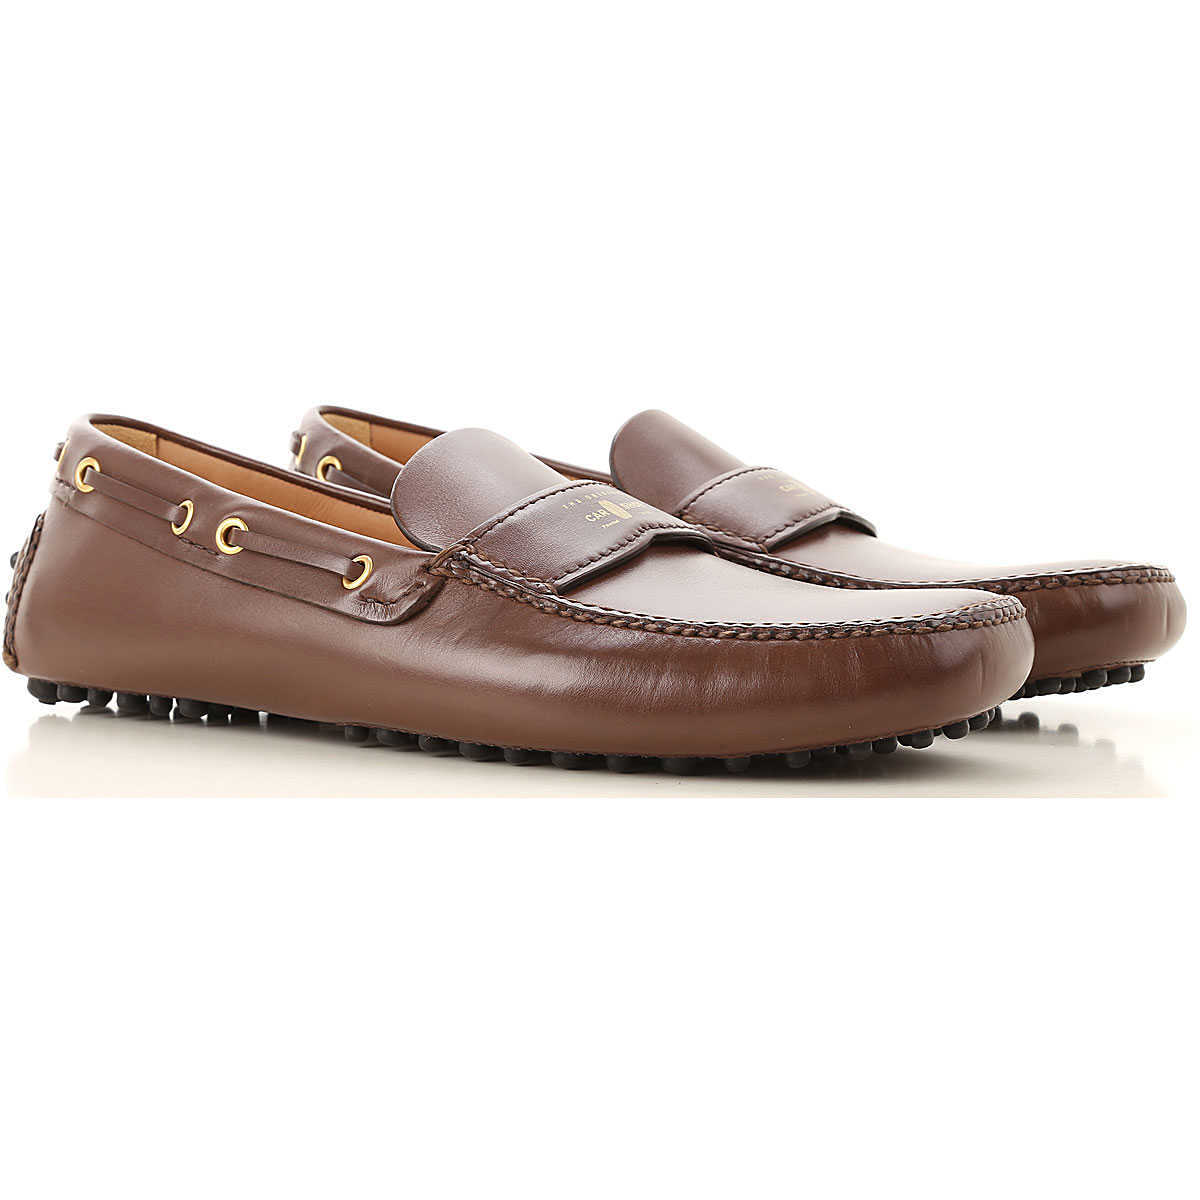 Car Shoe Loafers for Men in Outlet Brown Canada - GOOFASH - Mens LOAFERS